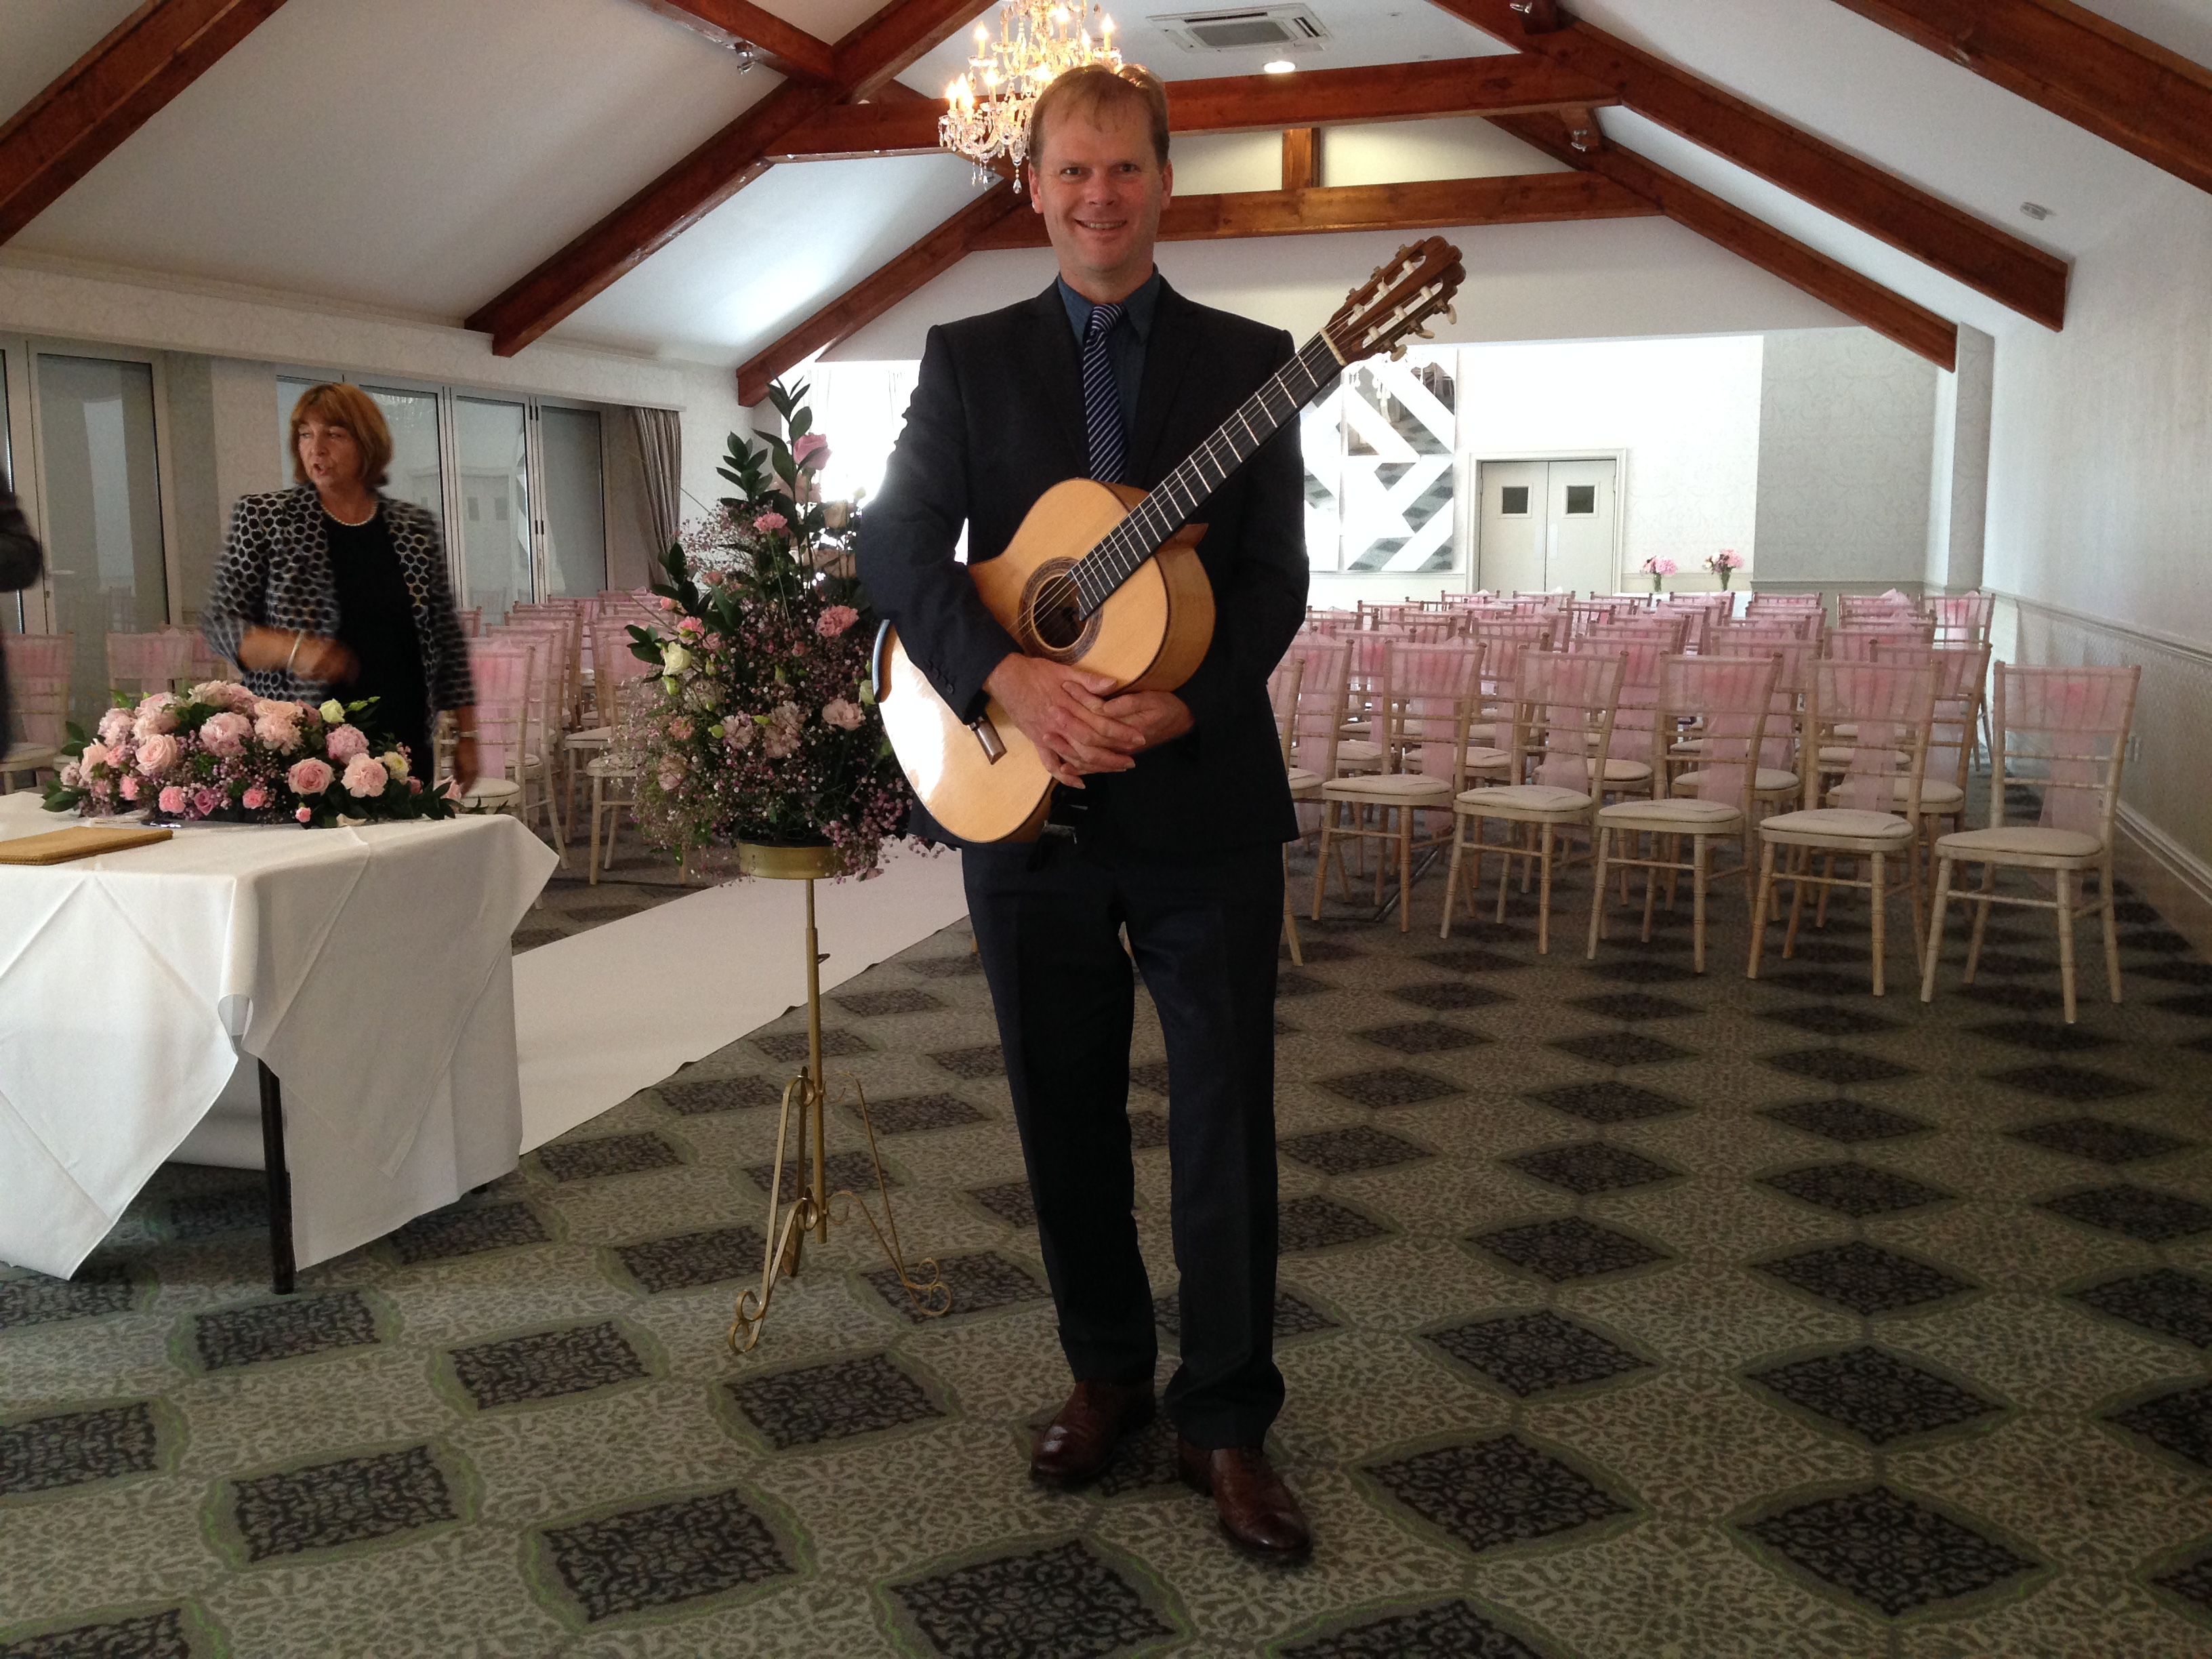 Guitarist at civil wedding ceremony